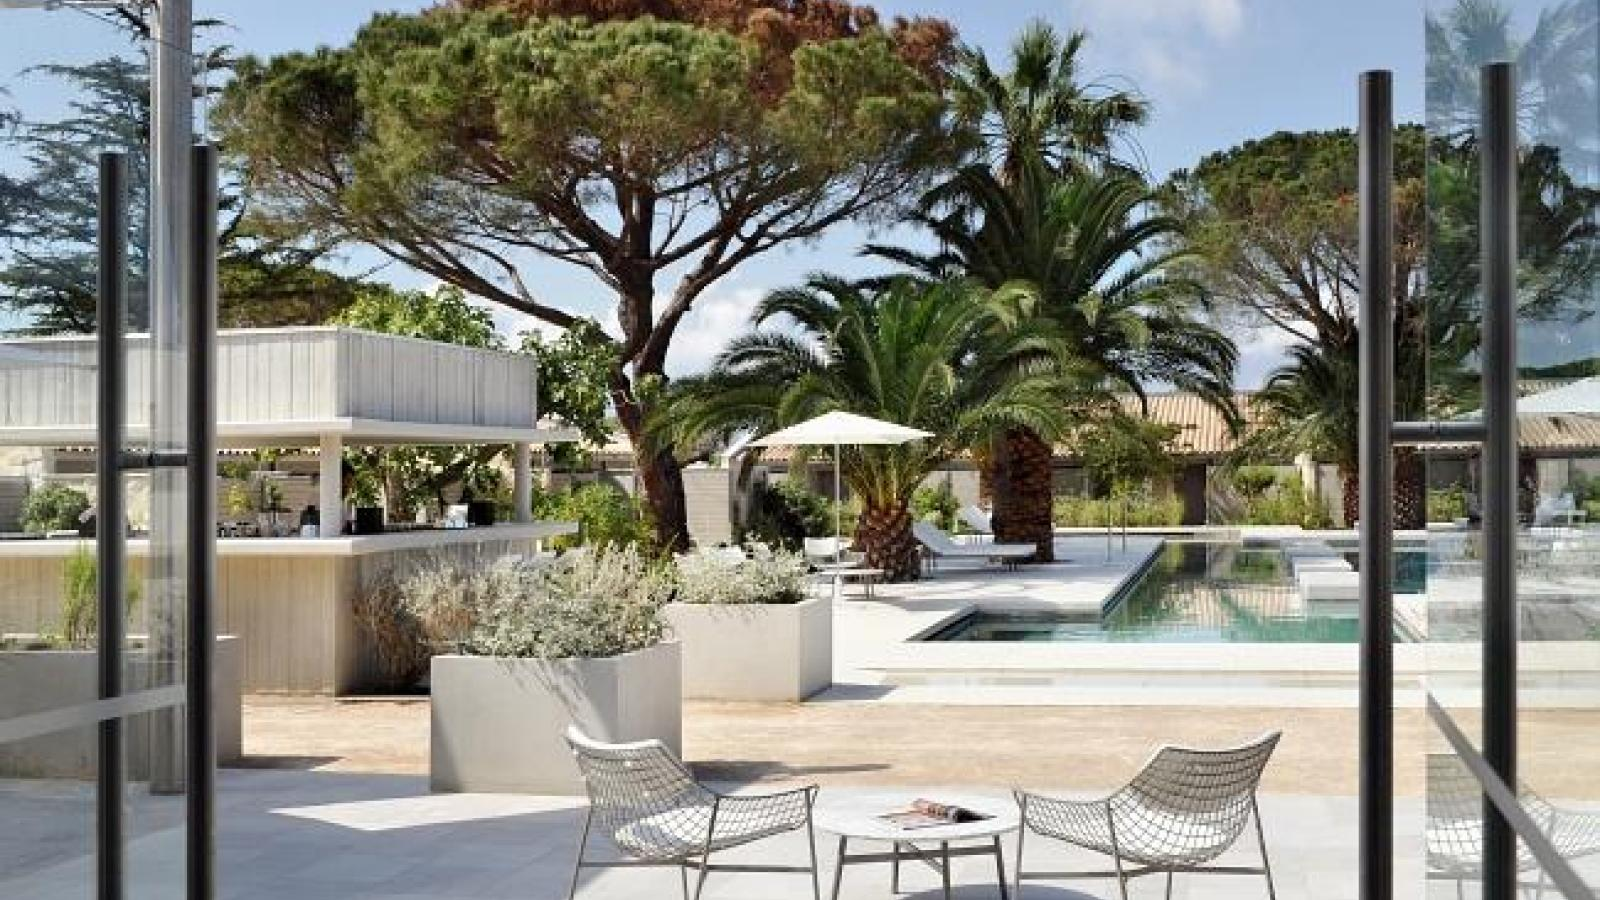 Sezz St Tropez: a dream destination for 5 wonderful years